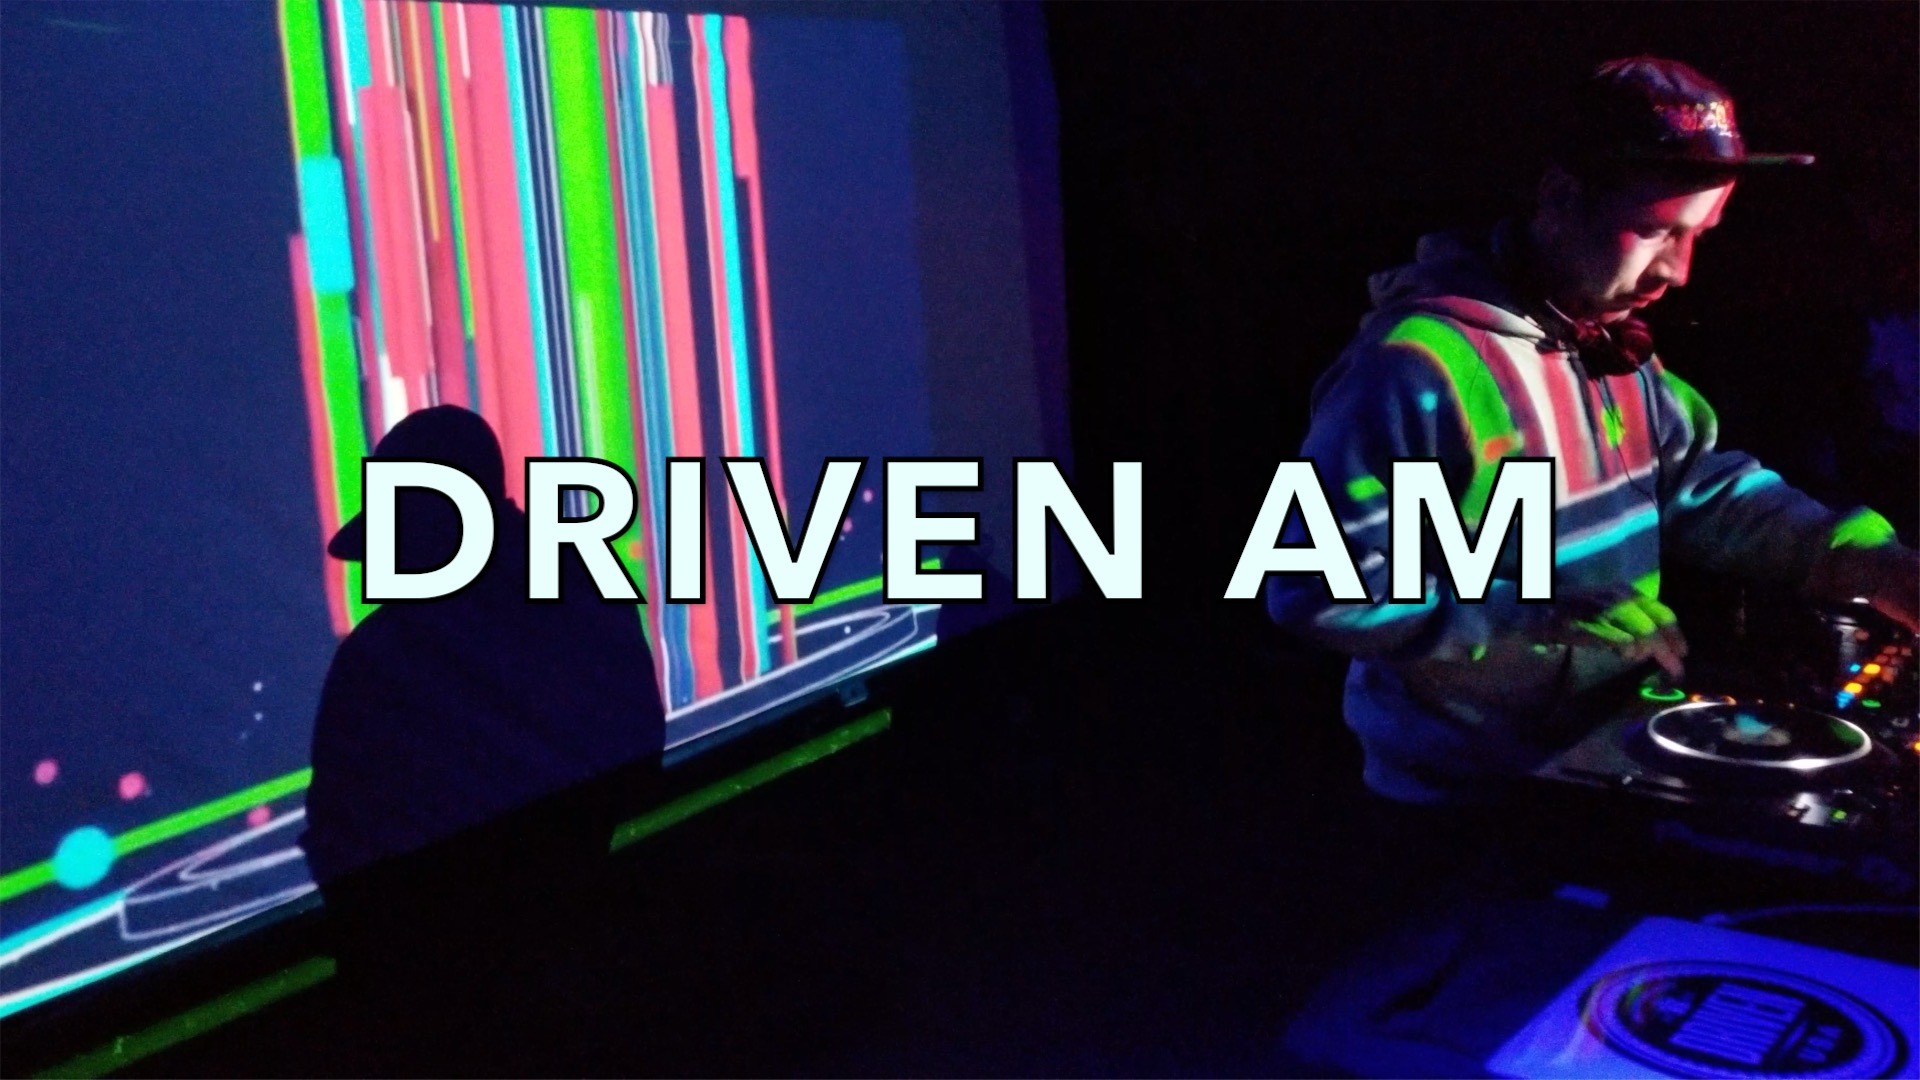 Drum & Bass by Driven AM - Monthly @ Sunnyvale, Brooklyn2.jpg